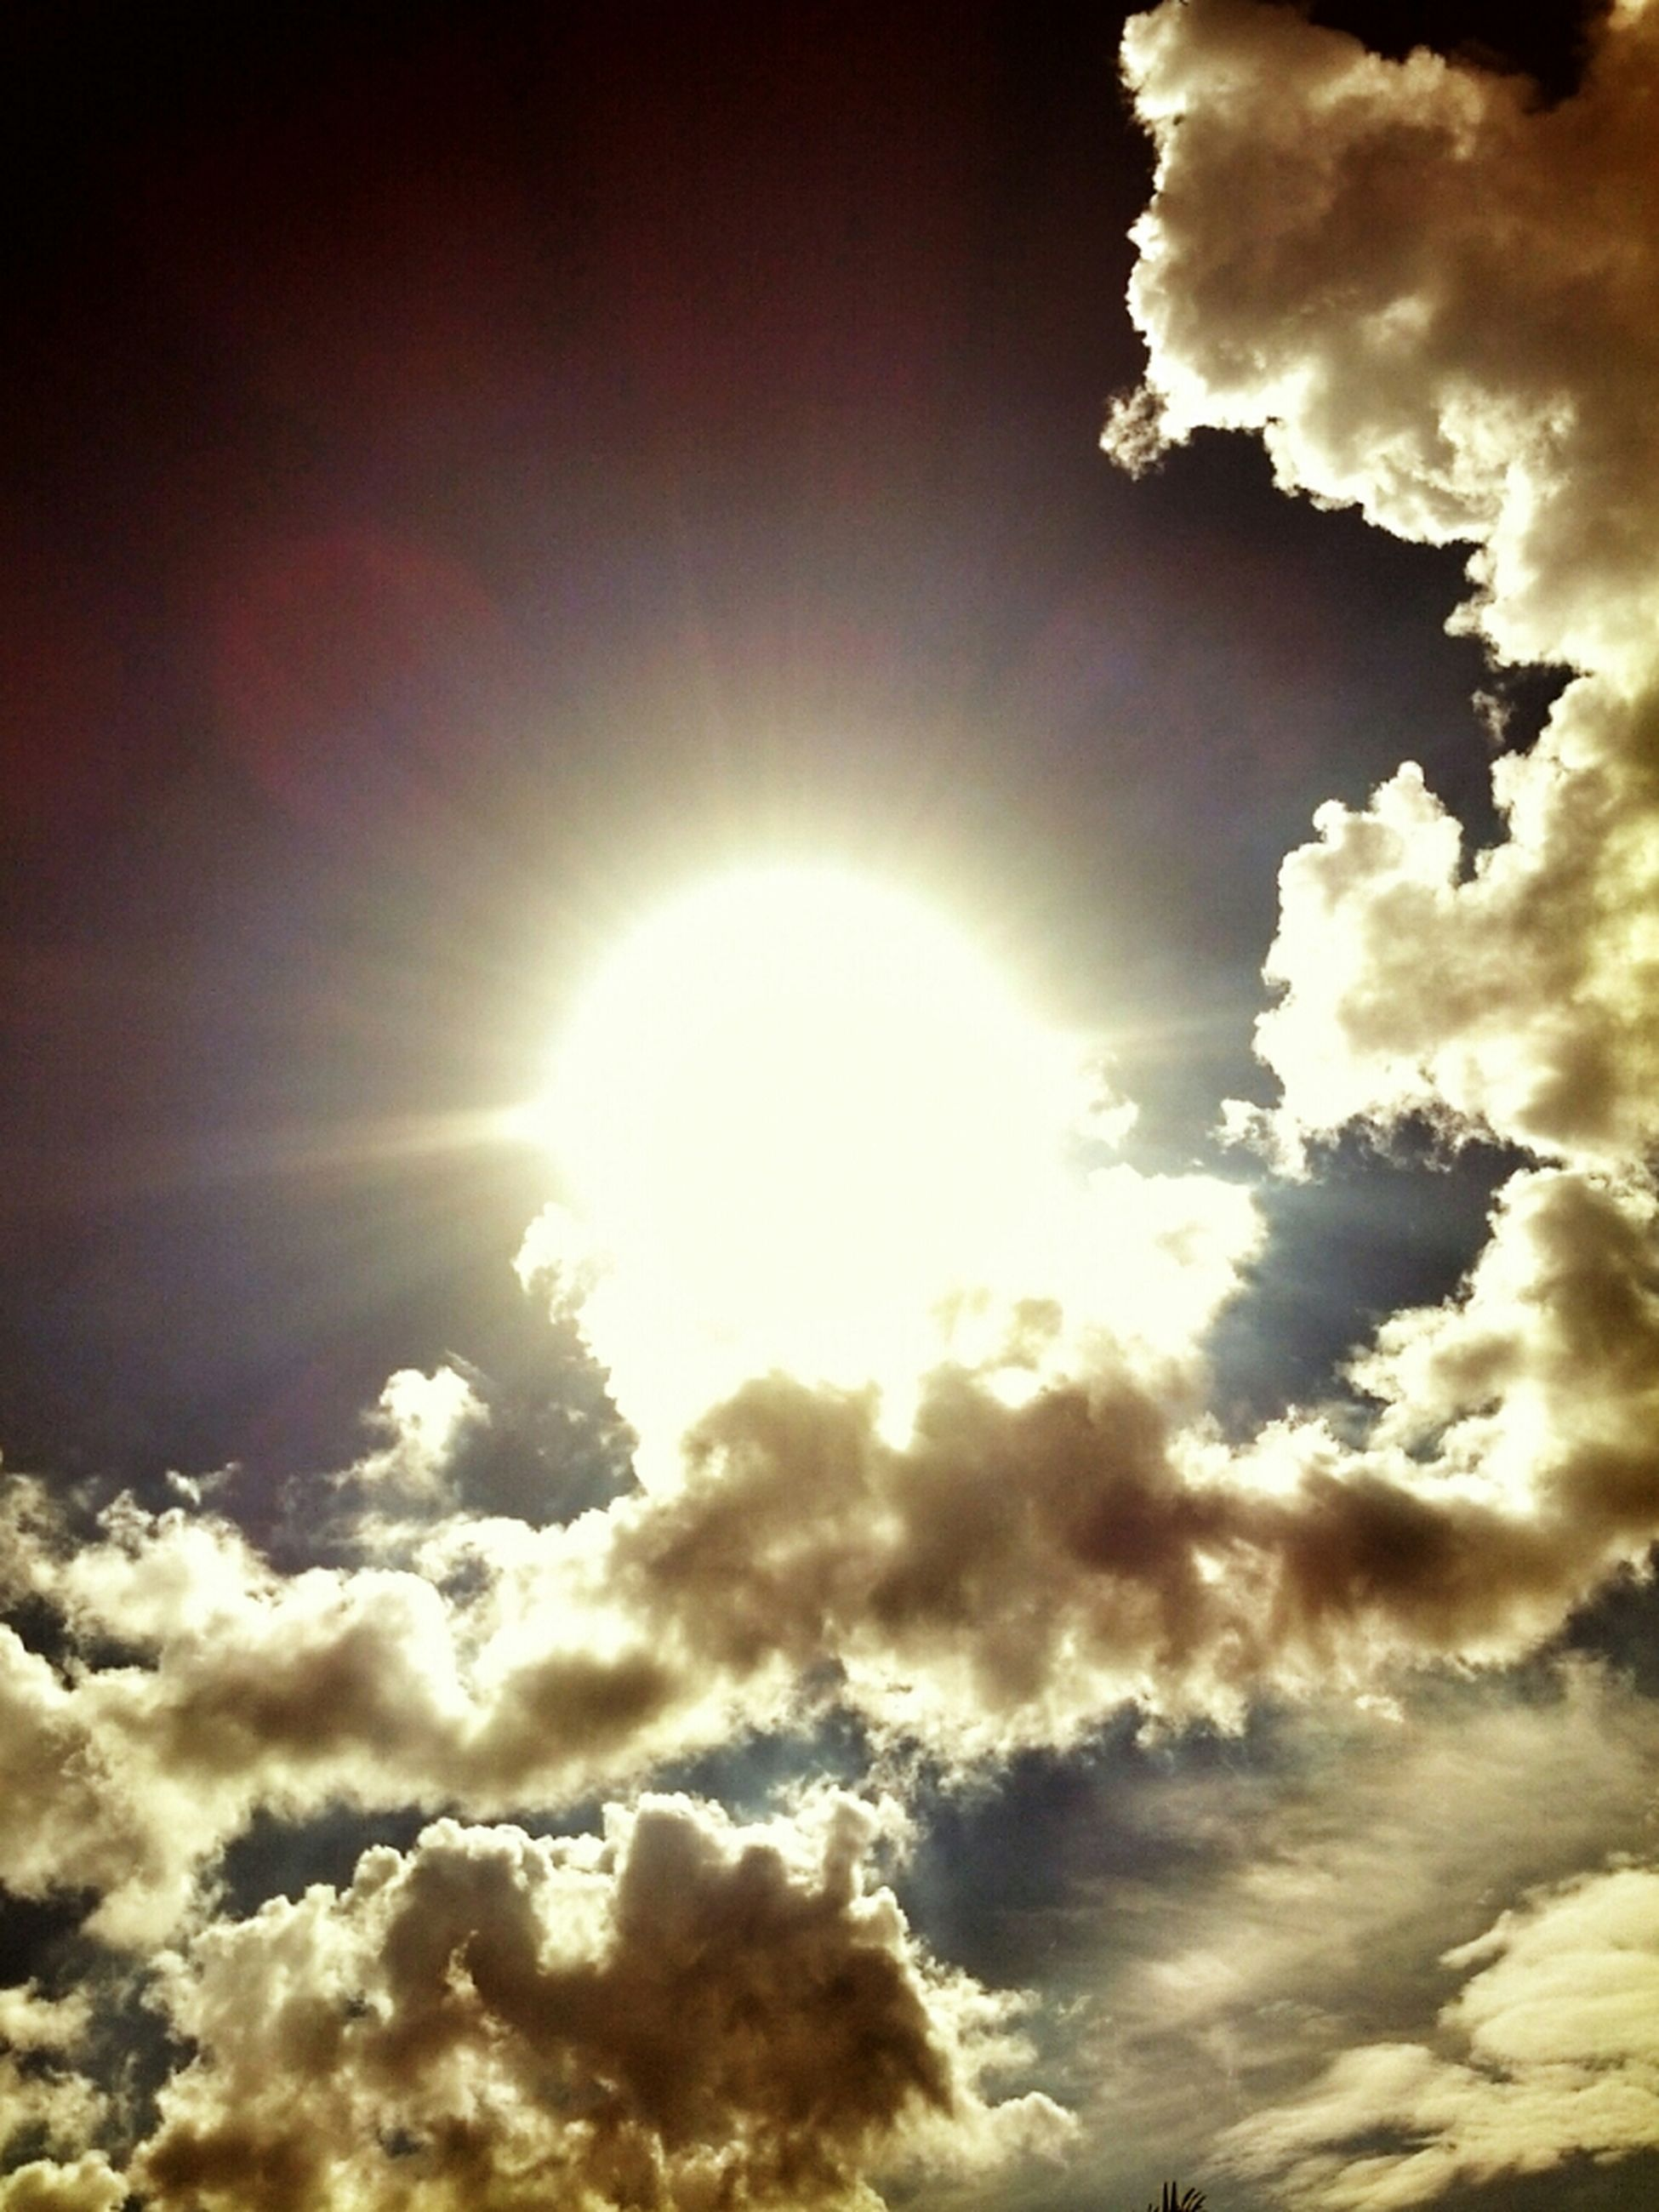 sky, sun, cloud - sky, low angle view, sunbeam, sky only, beauty in nature, cloudy, scenics, tranquility, sunlight, nature, cloudscape, cloud, tranquil scene, idyllic, lens flare, bright, weather, backgrounds